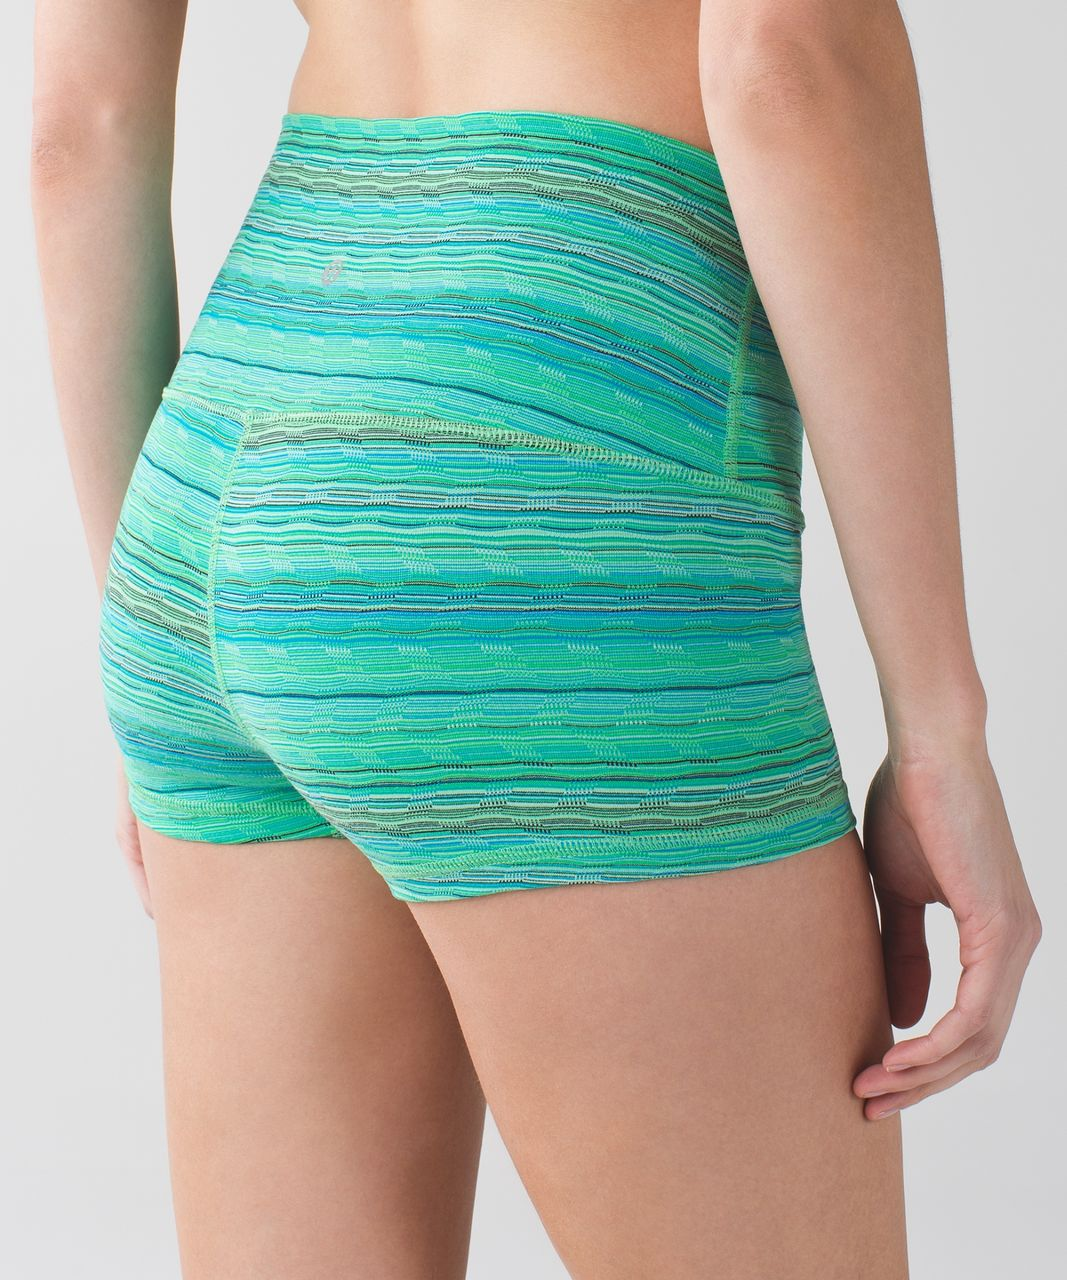 Lululemon Boogie Short (Roll Down) - Space Dye Twist 6 Colour Dragonfly Naval Blue